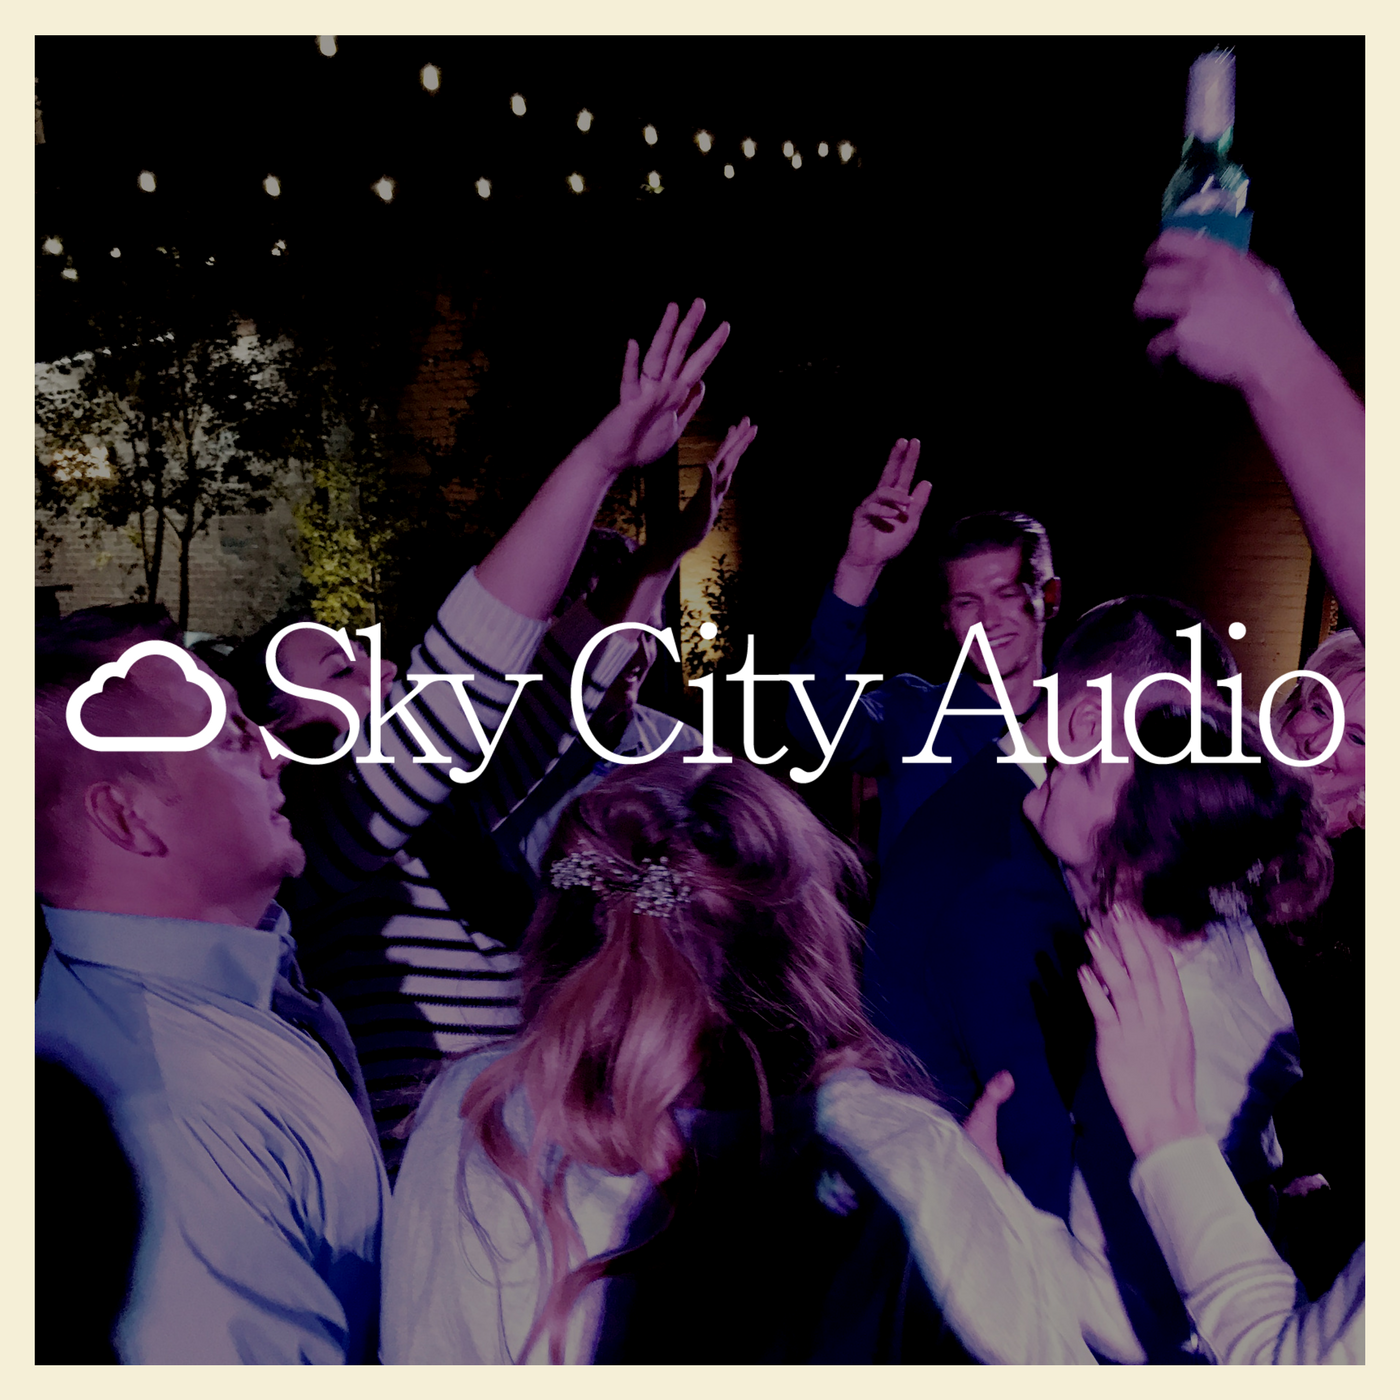 Sky City Audio